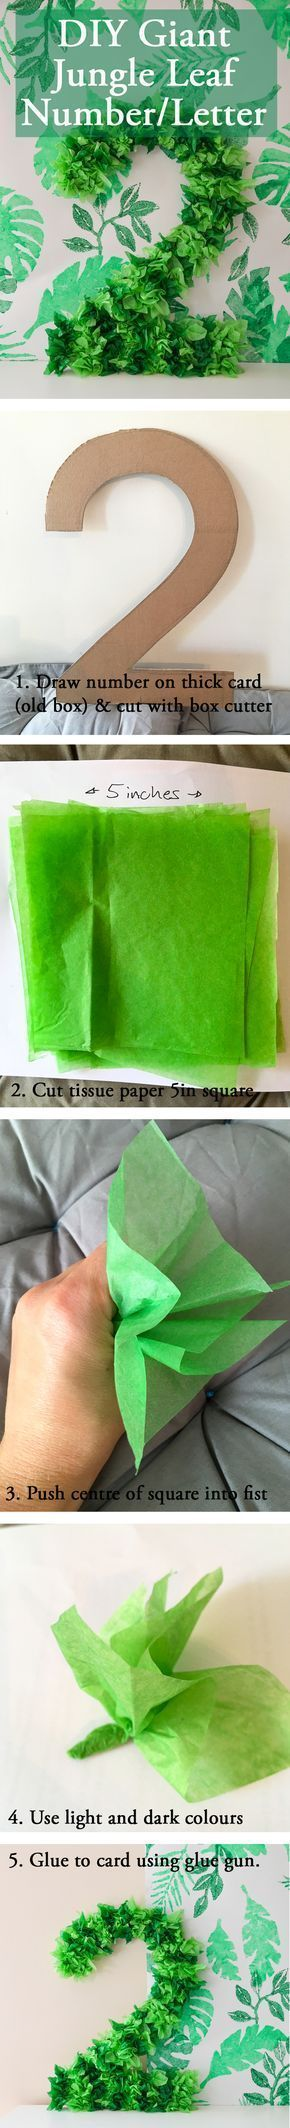 DIY How to make giant number letter to look like foliage out of green tissue paper. Click to get more inspiration on The Impala Collection website. Keywords: Camping, Out of Africa, Safari, Jungle, Africa, Savannah, Serengeti, Zoo, Leaf, Wildlife, Wild, Decor, Party planning, Kids parties, Birthday parties, Christening parties, Education, DIY, Tribal, Tropical, Bush, Theme, Interiors, Tips, Ideas, Advice, Crafts, Budget, Homeware, Serveware, Fair Trade, UK #diypartydecorationsbudget